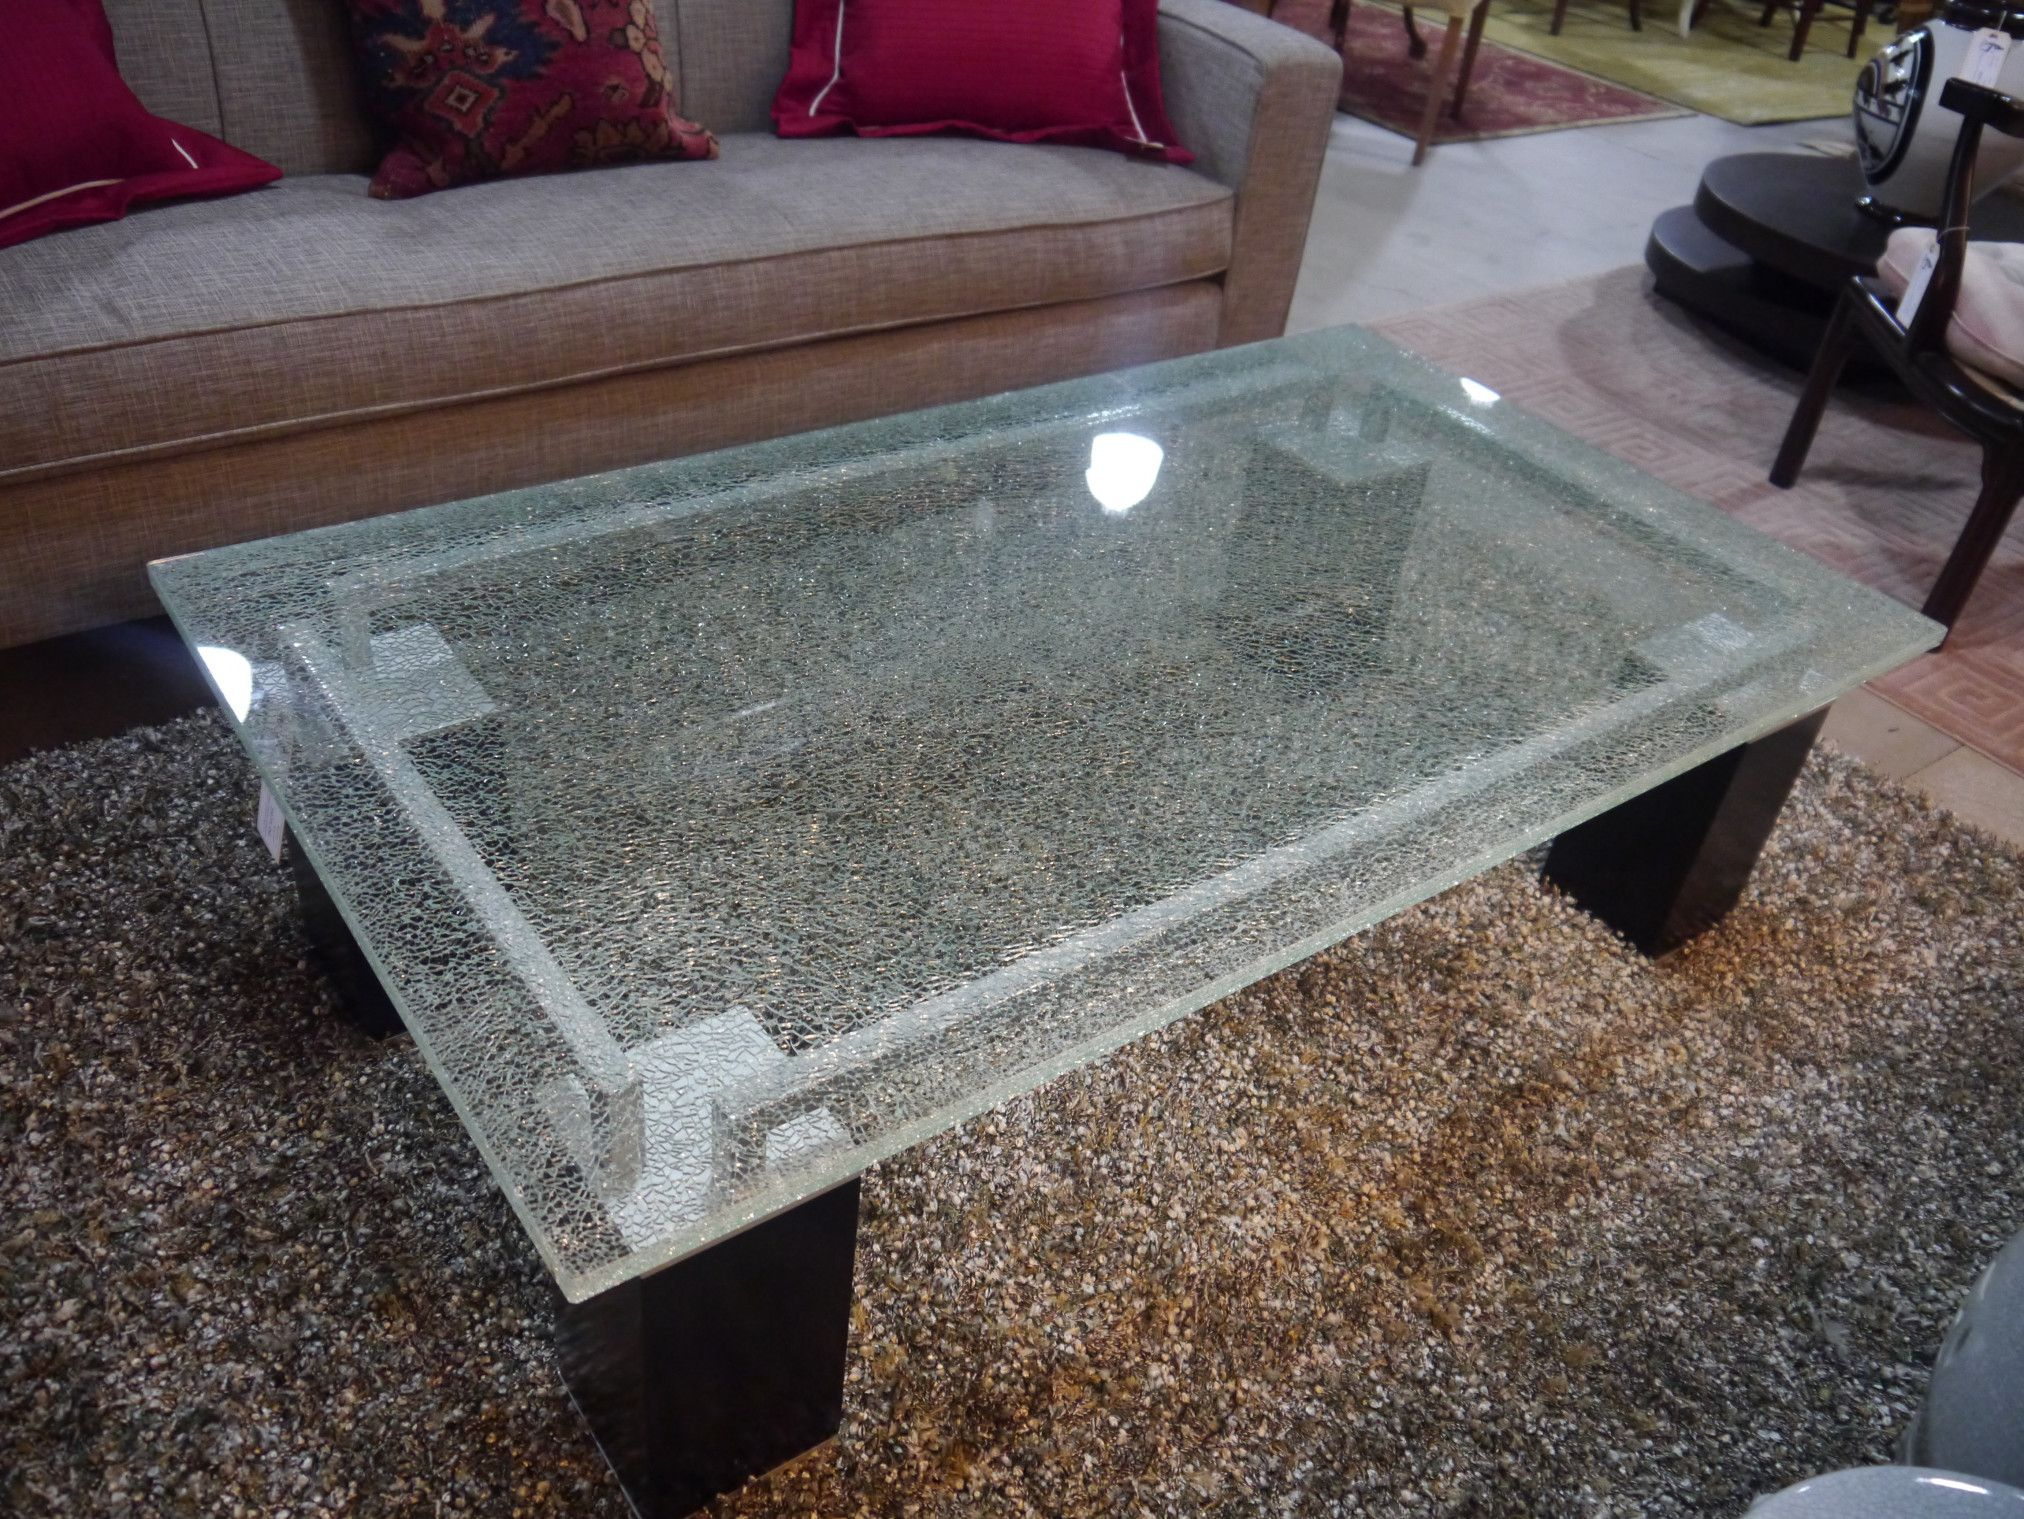 99 Cracked Glass Coffee Table Best Paint For Wood Furniture Check More At Http Www Buzzfolders Com Cr Glass Coffee Table Coffee Table Coffee Table Vintage [ 1519 x 2024 Pixel ]